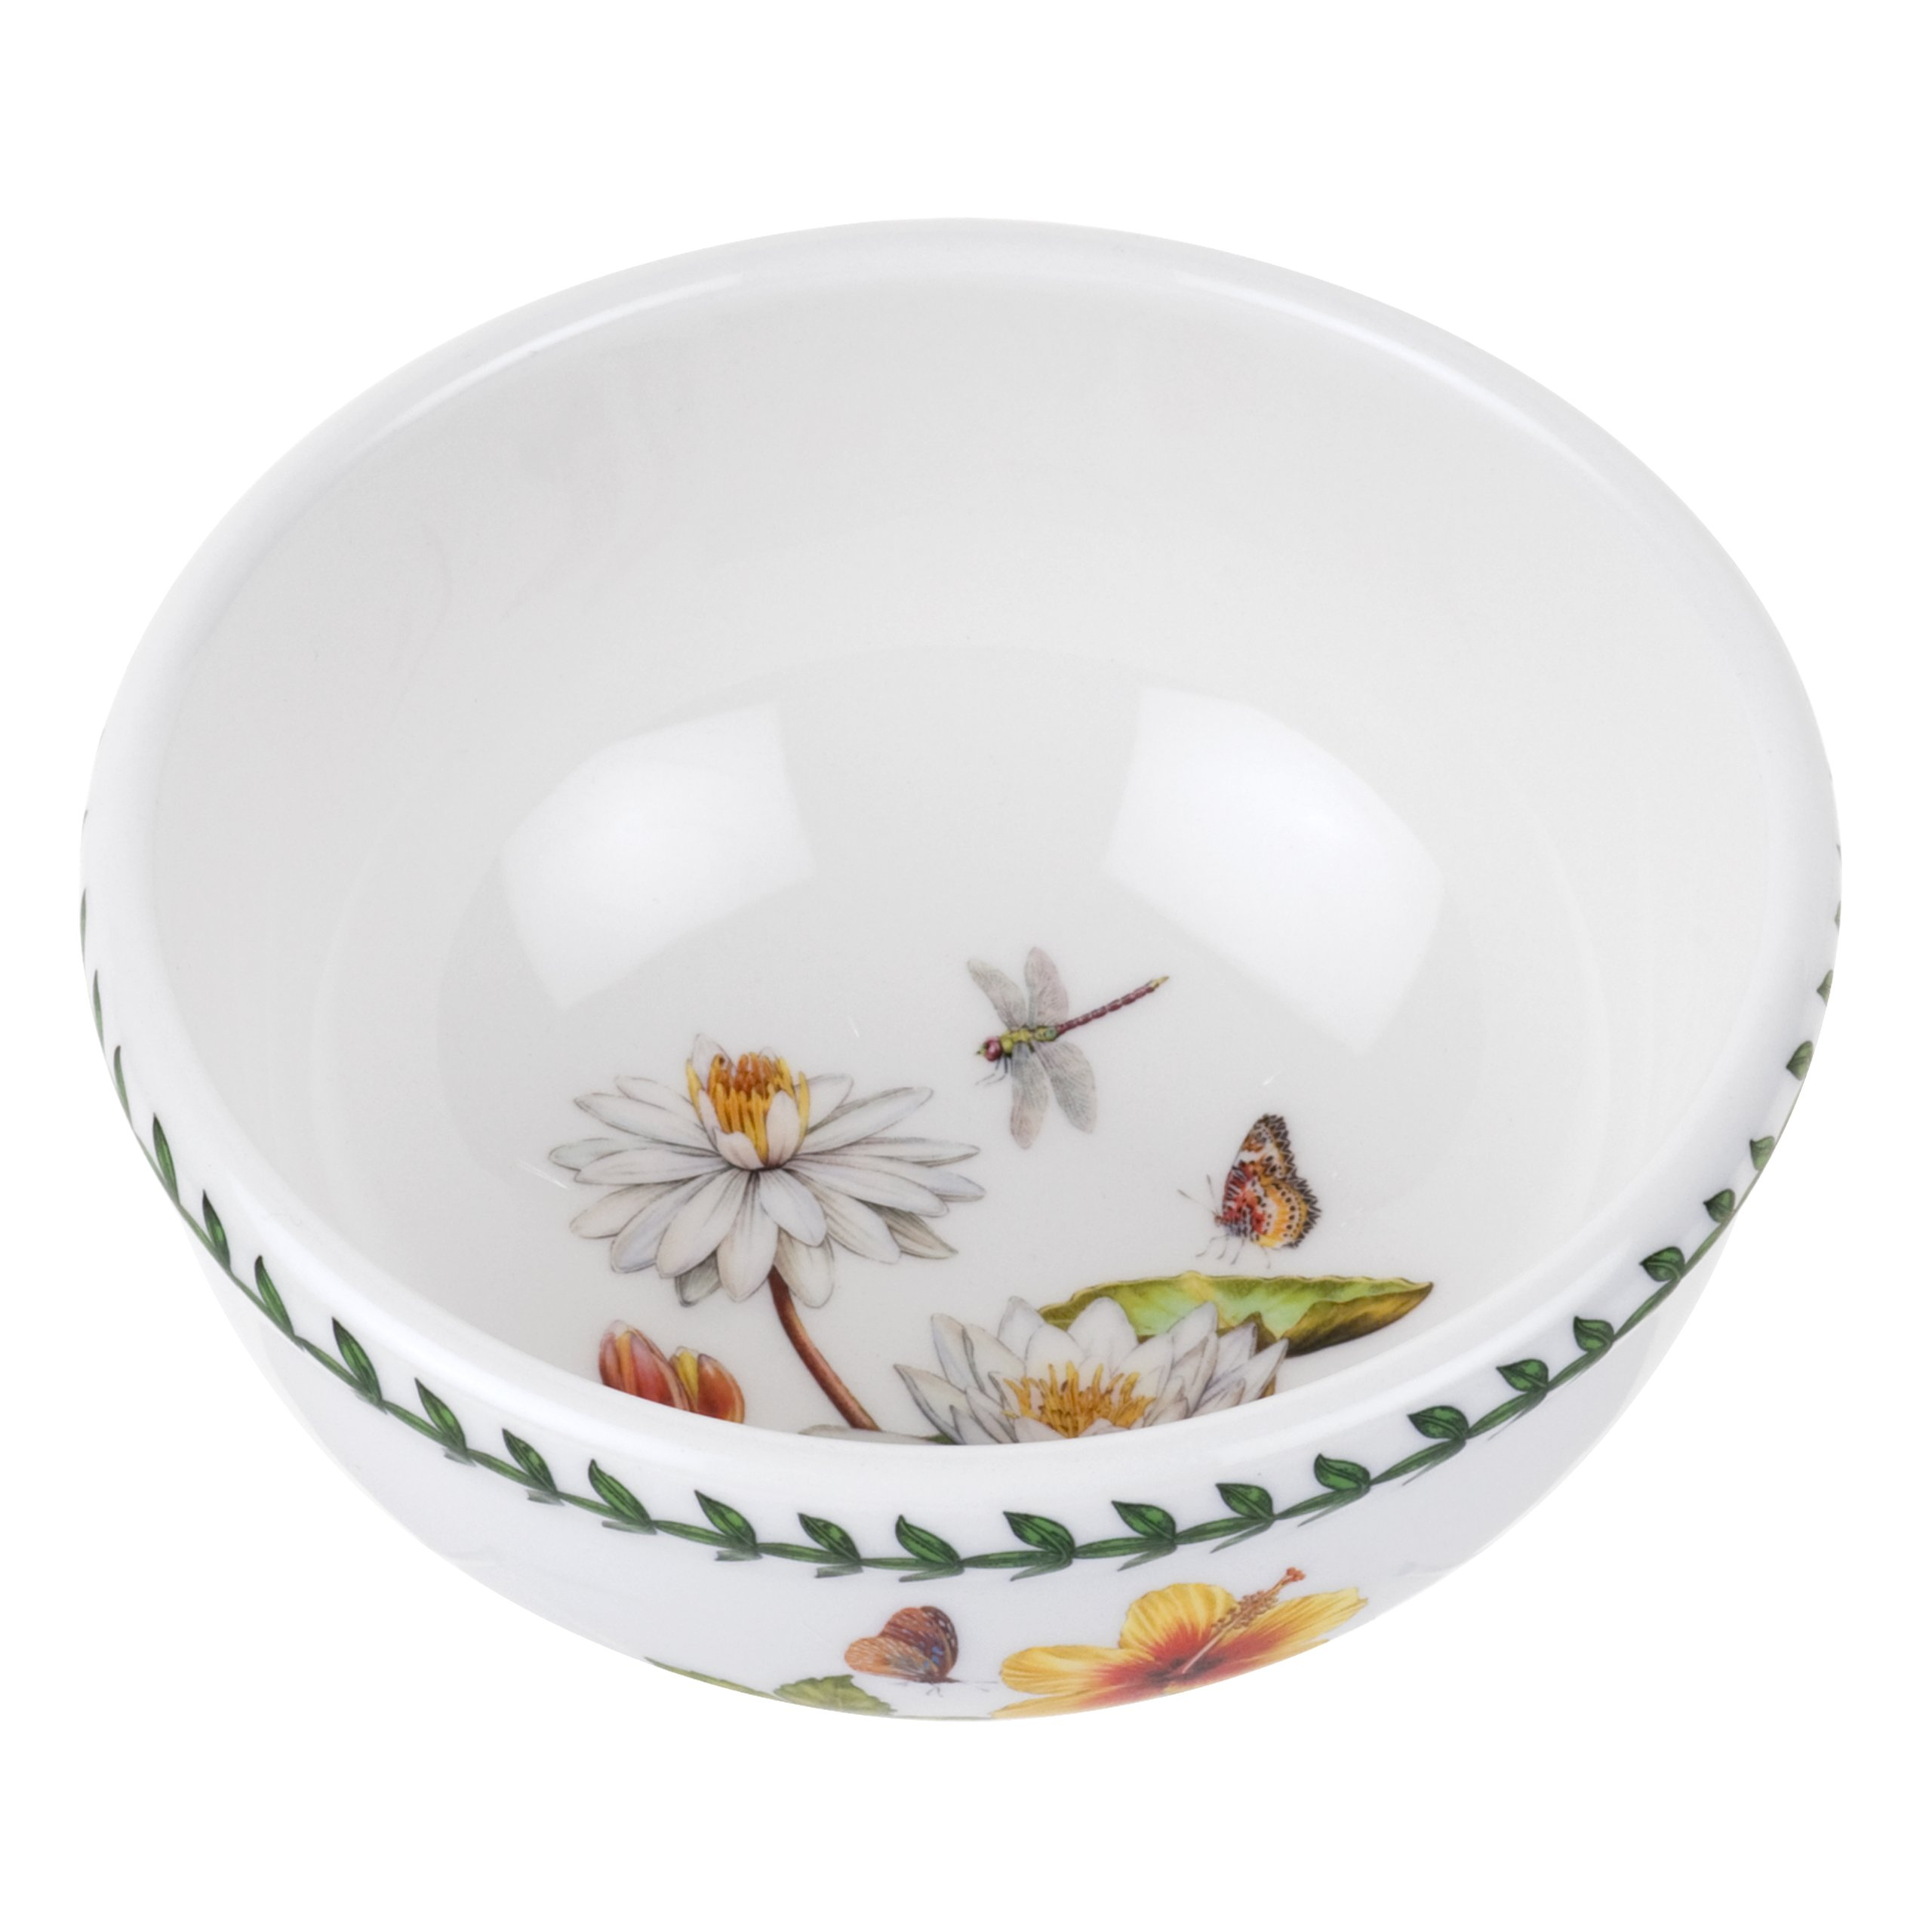 Portmeirion Exotic Botanic Garden Individual Fruit Salad Bowl with White Water Lily, Set of 6